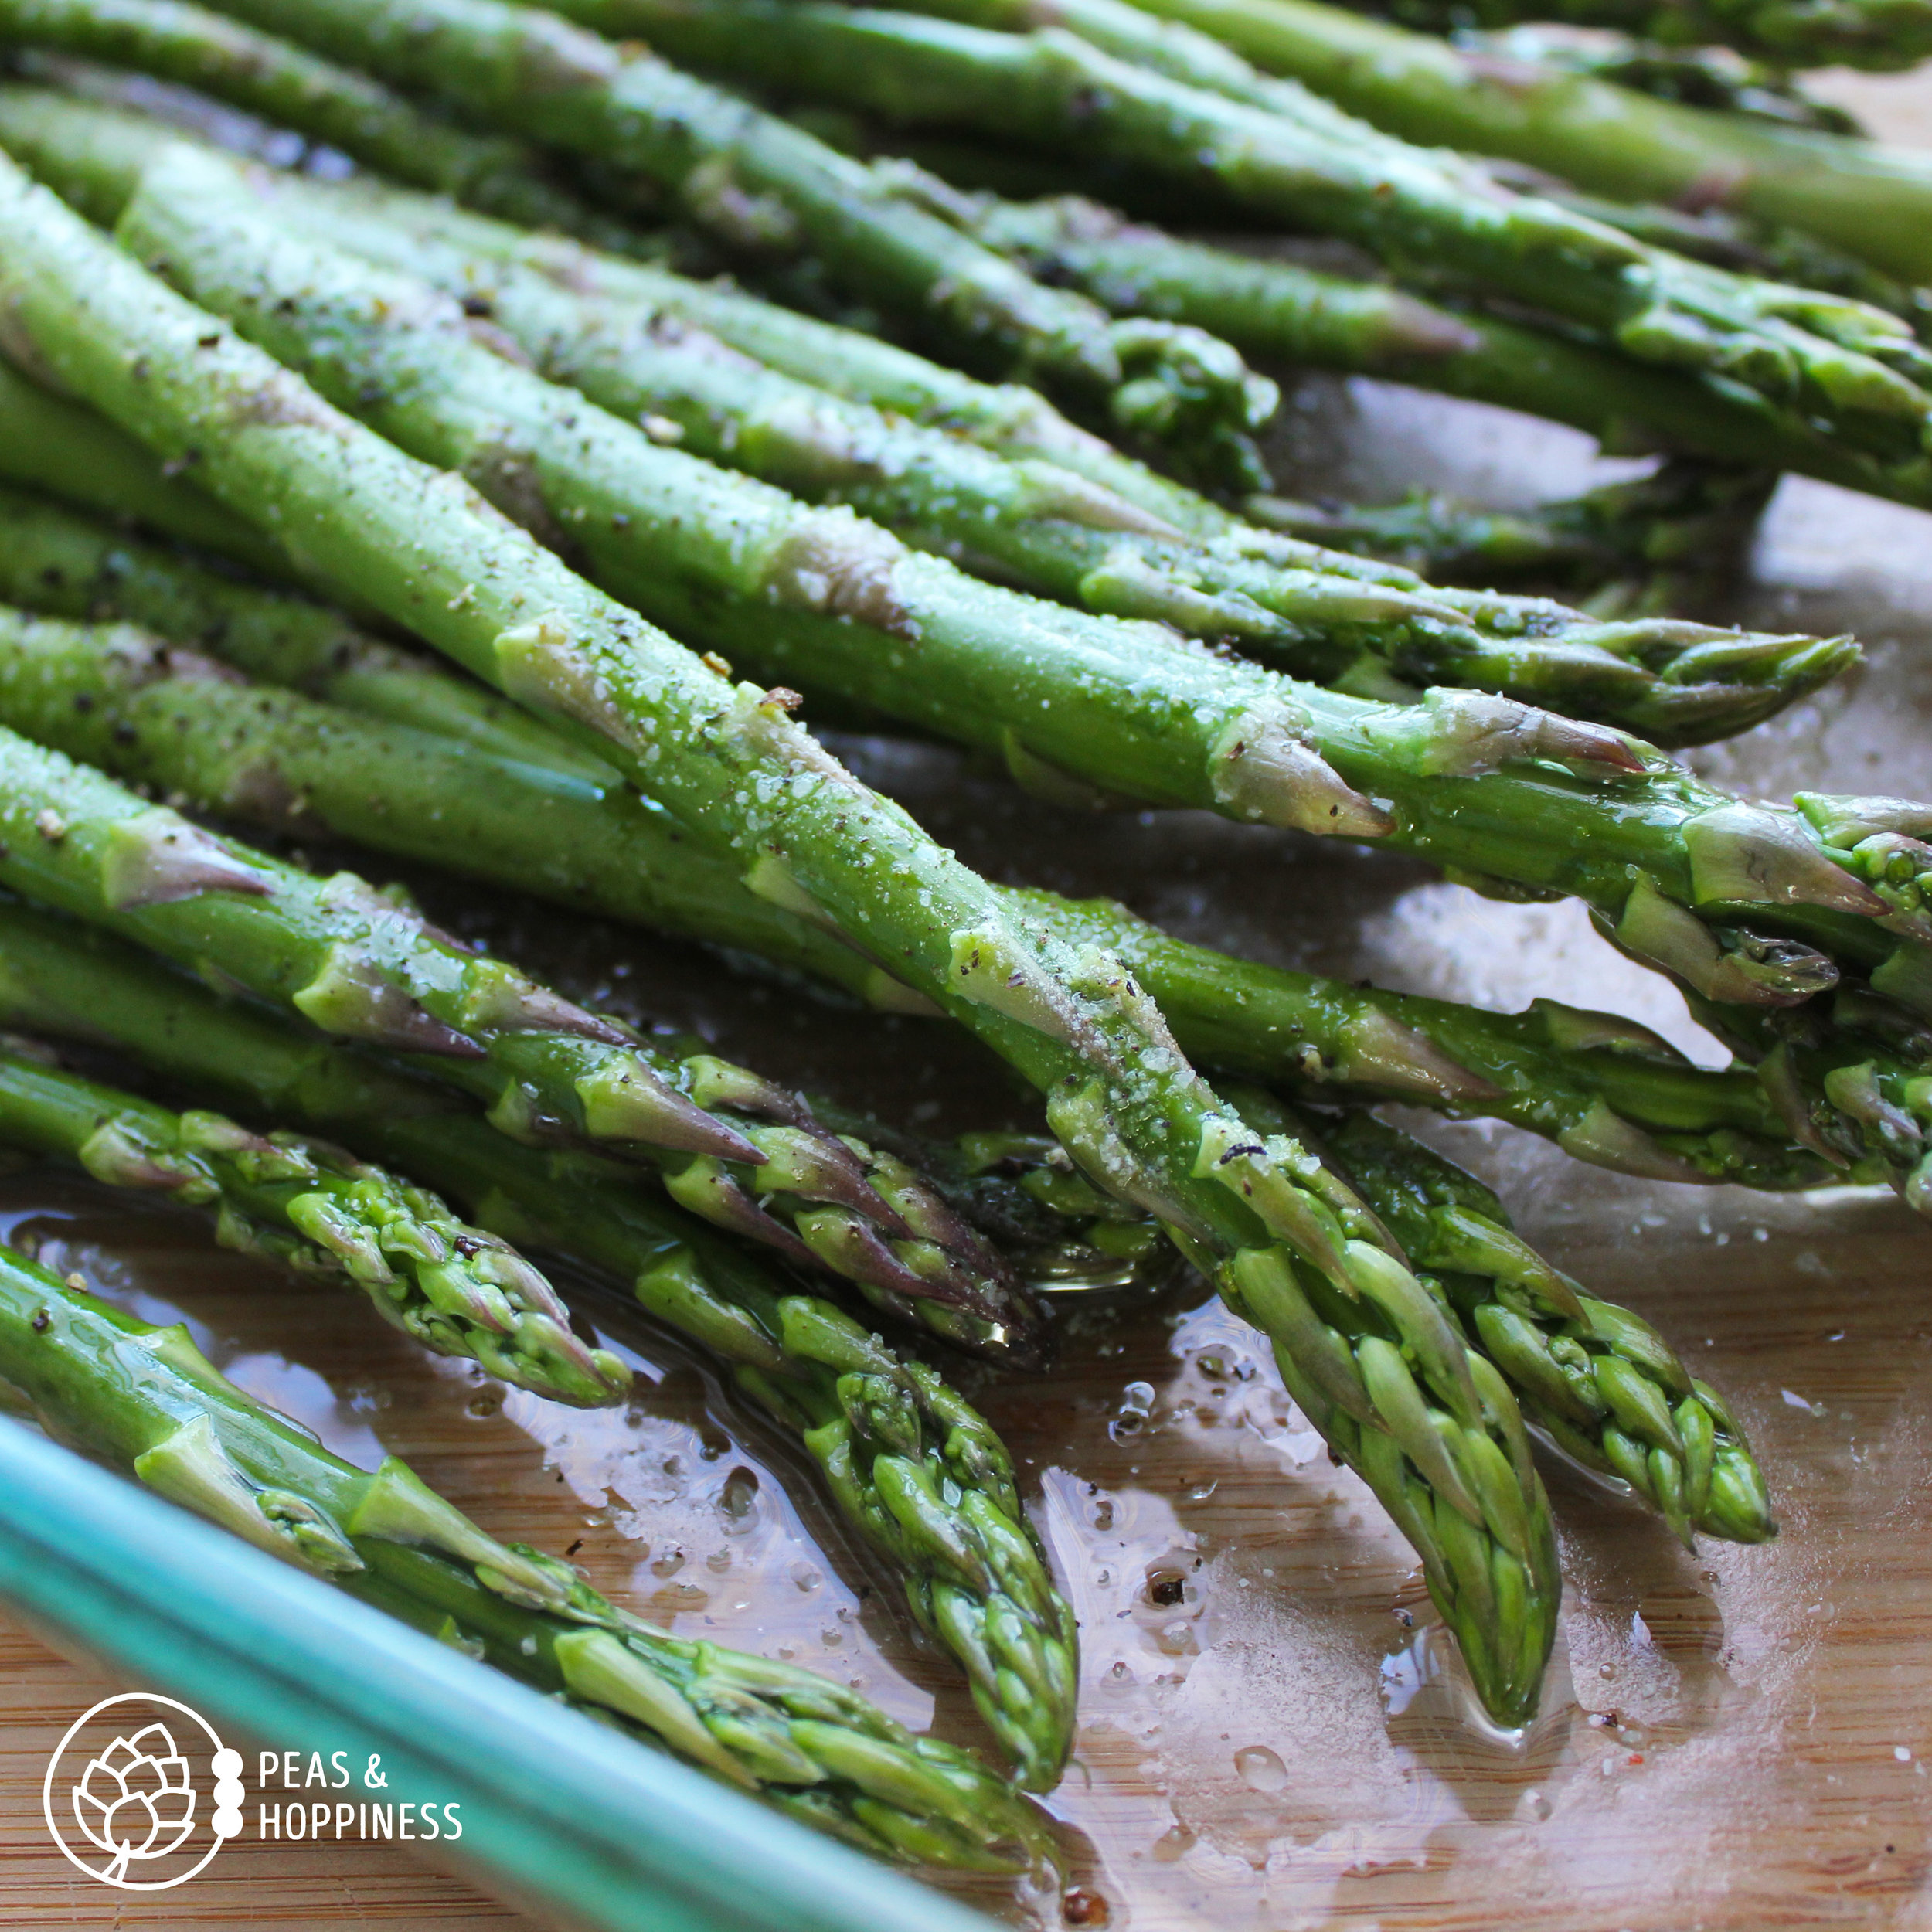 Pair  roasted asparagus  with... steak? chicken? fish? What's the ideal protein (and how much do you need?)